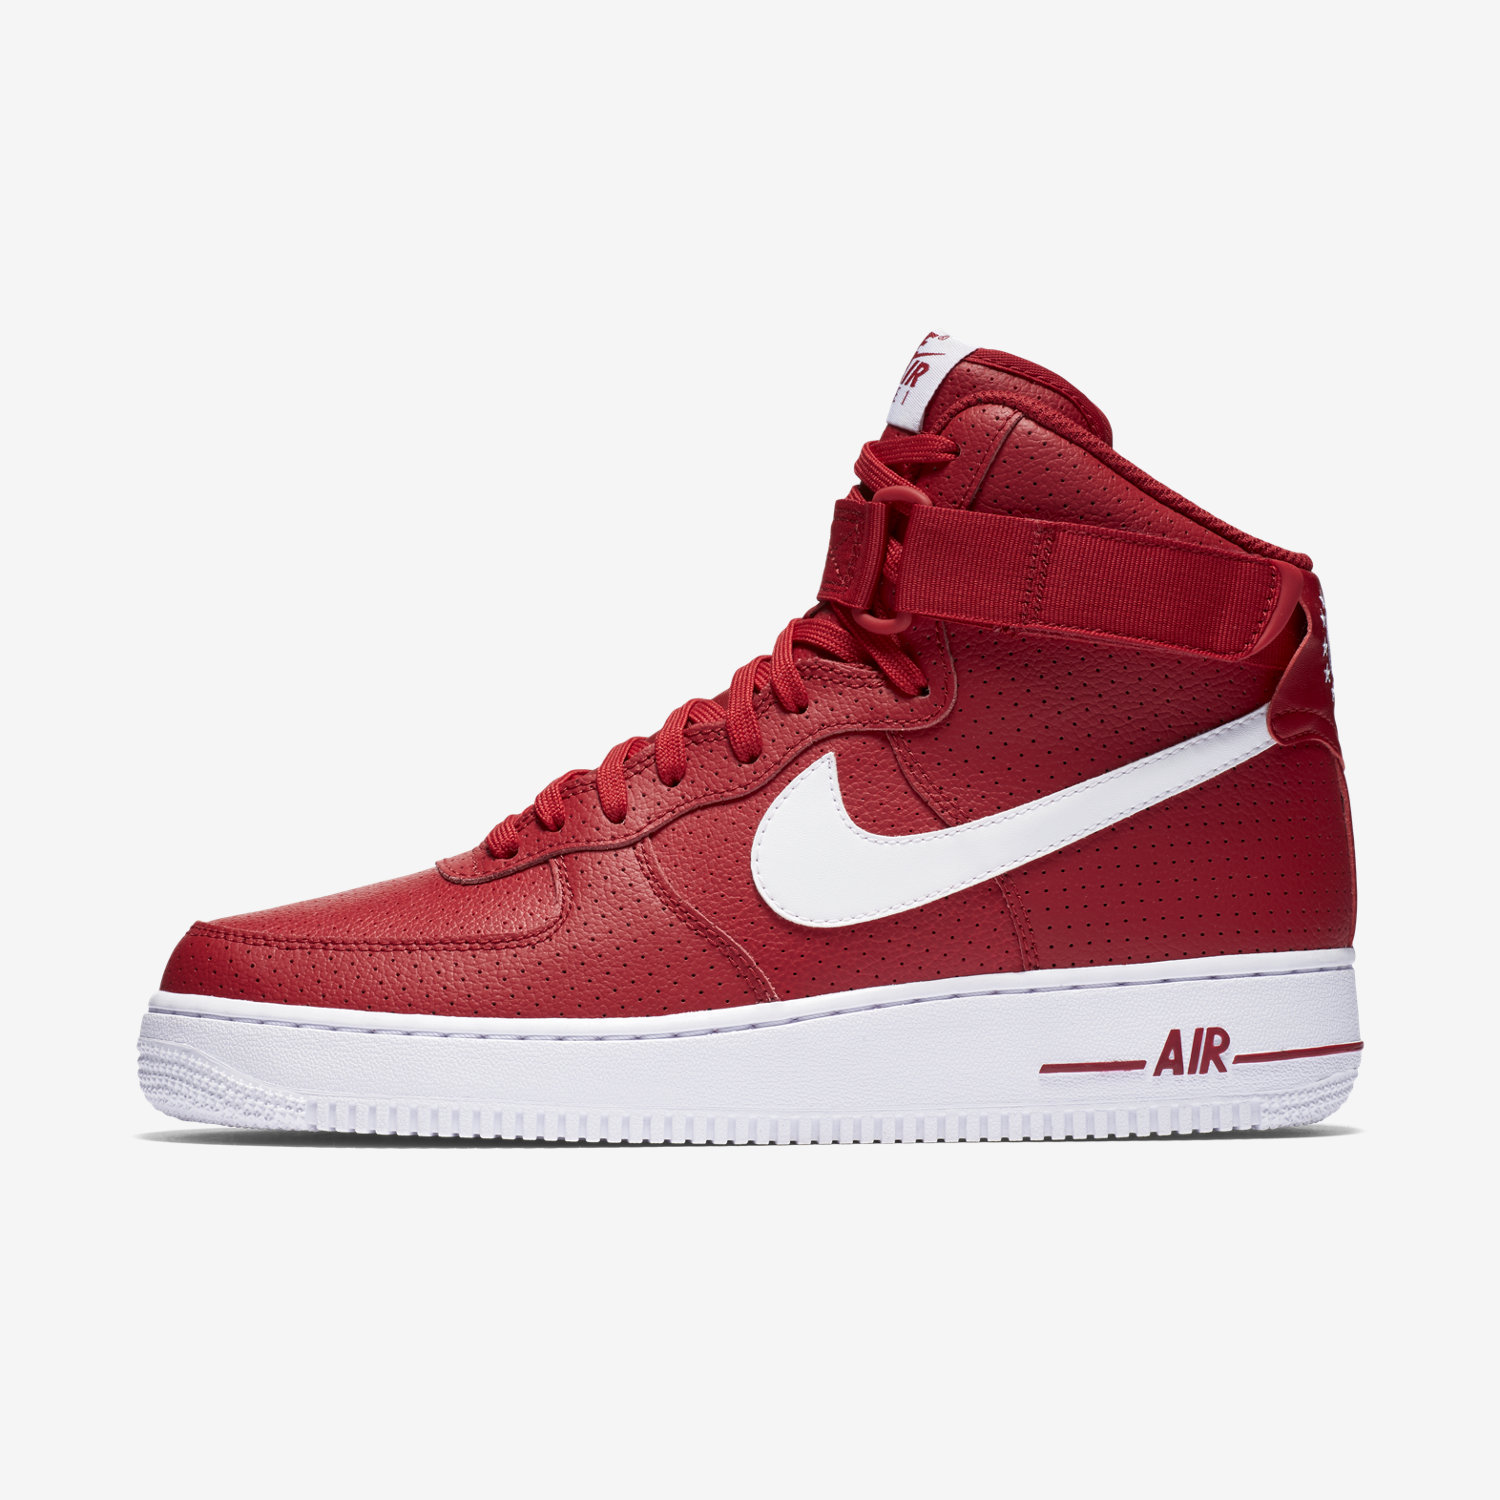 nike air force 1 high 07 review nike air max goadera. Black Bedroom Furniture Sets. Home Design Ideas